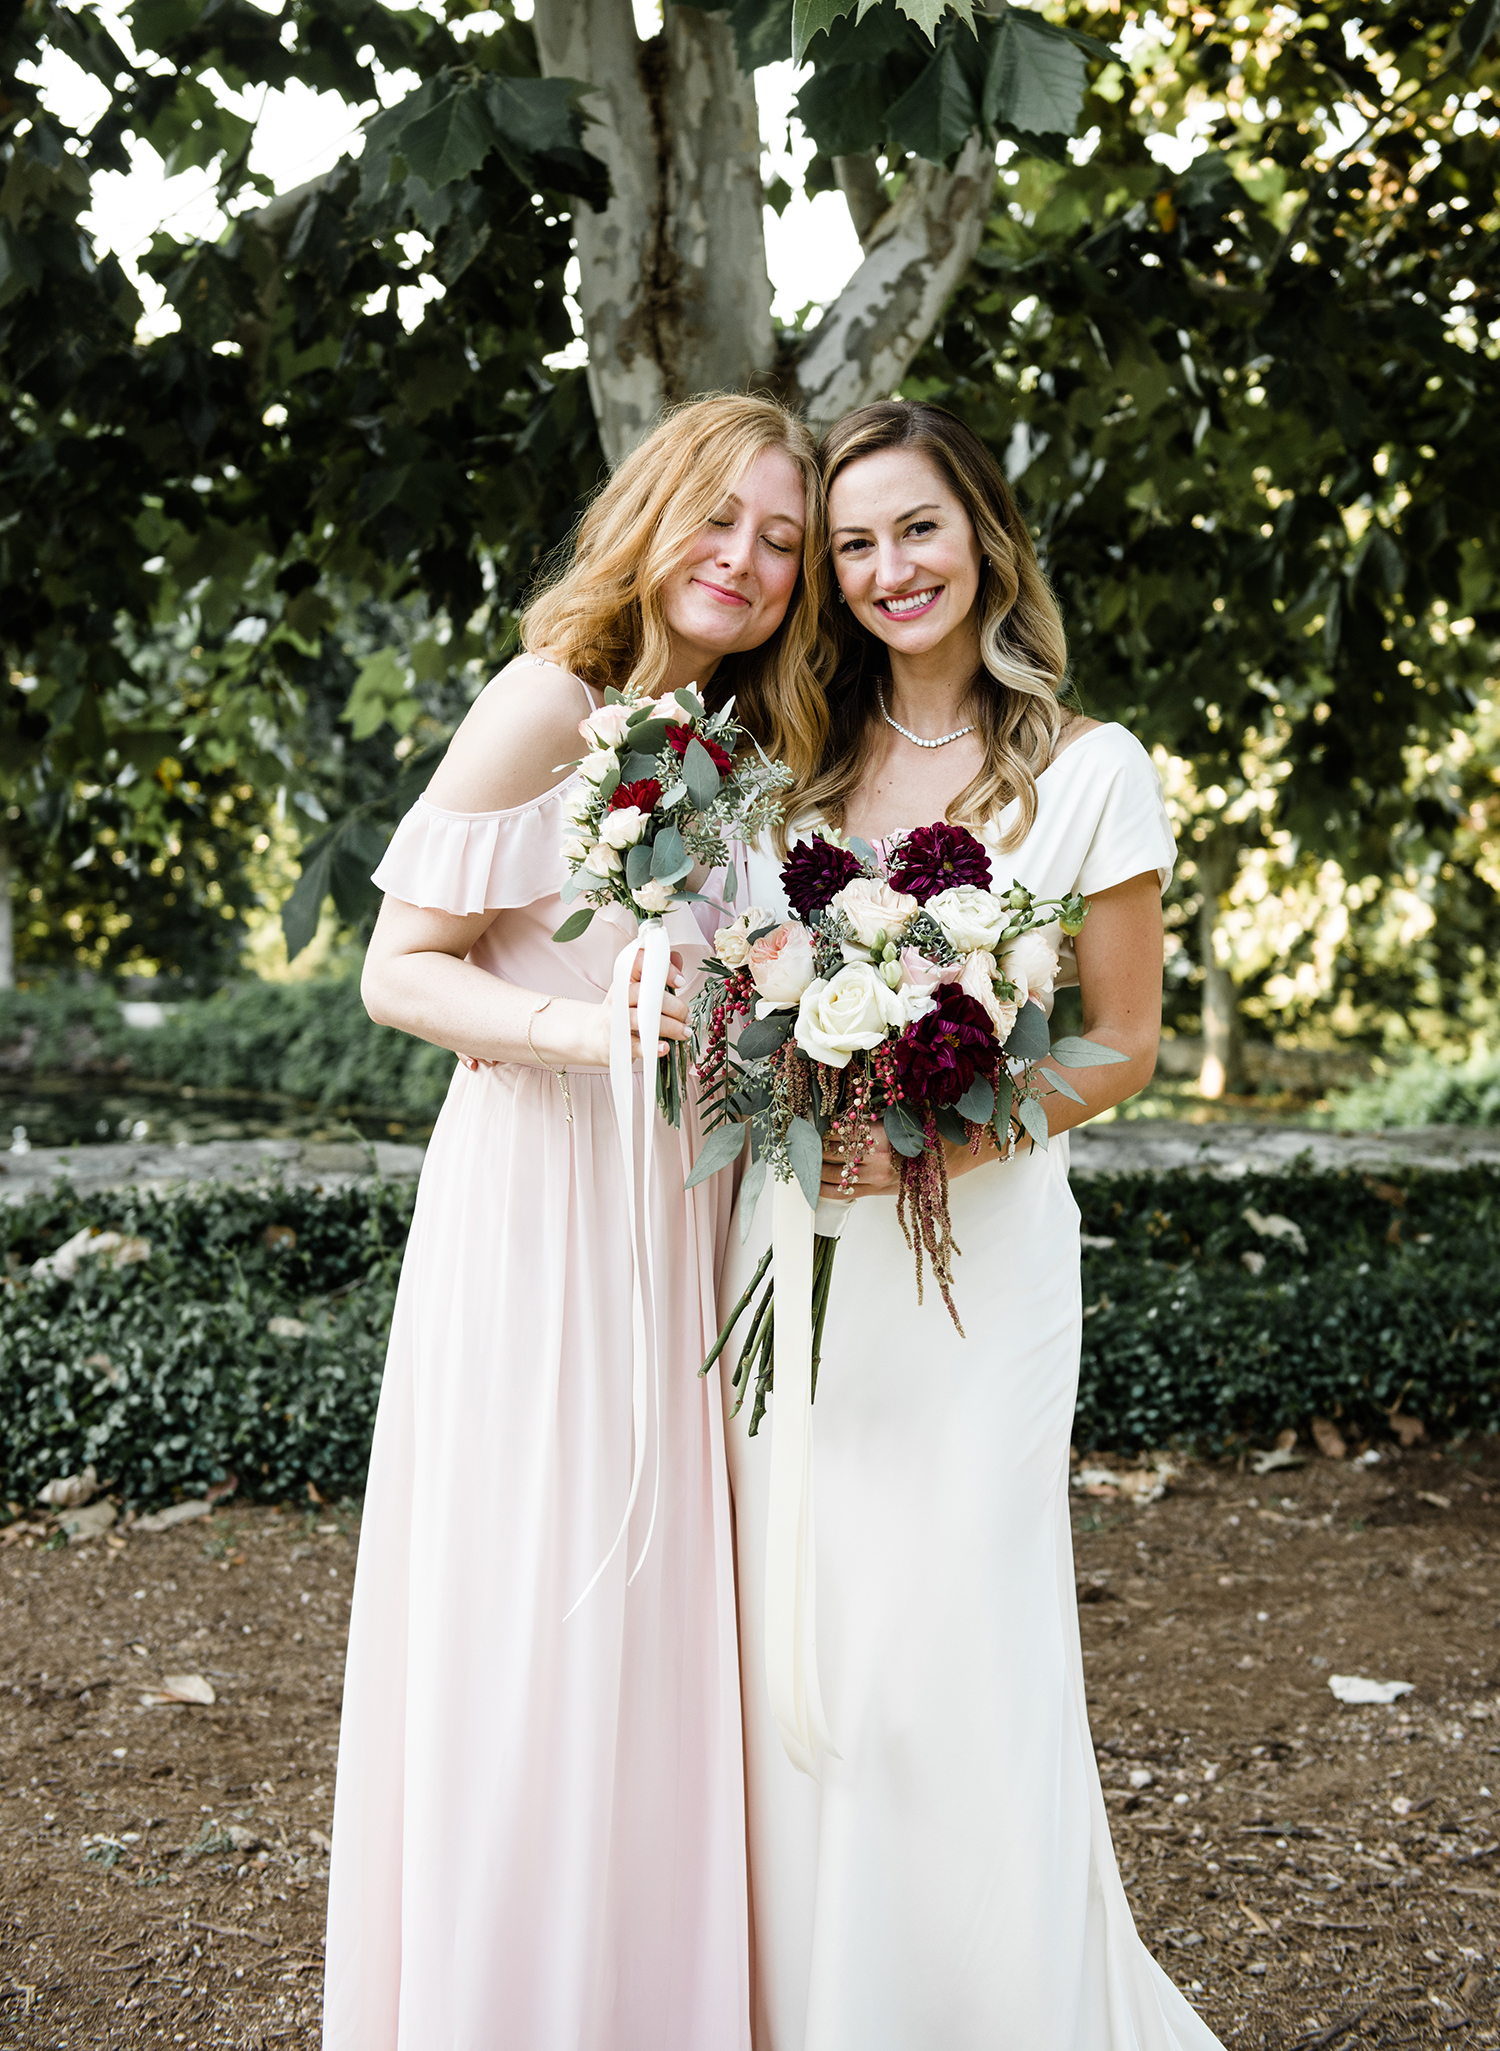 livvyland-blog-olivia-watson-wedding-villa-del-lago-austin-texas-fall-blush-burgundy-classic-romantic-2